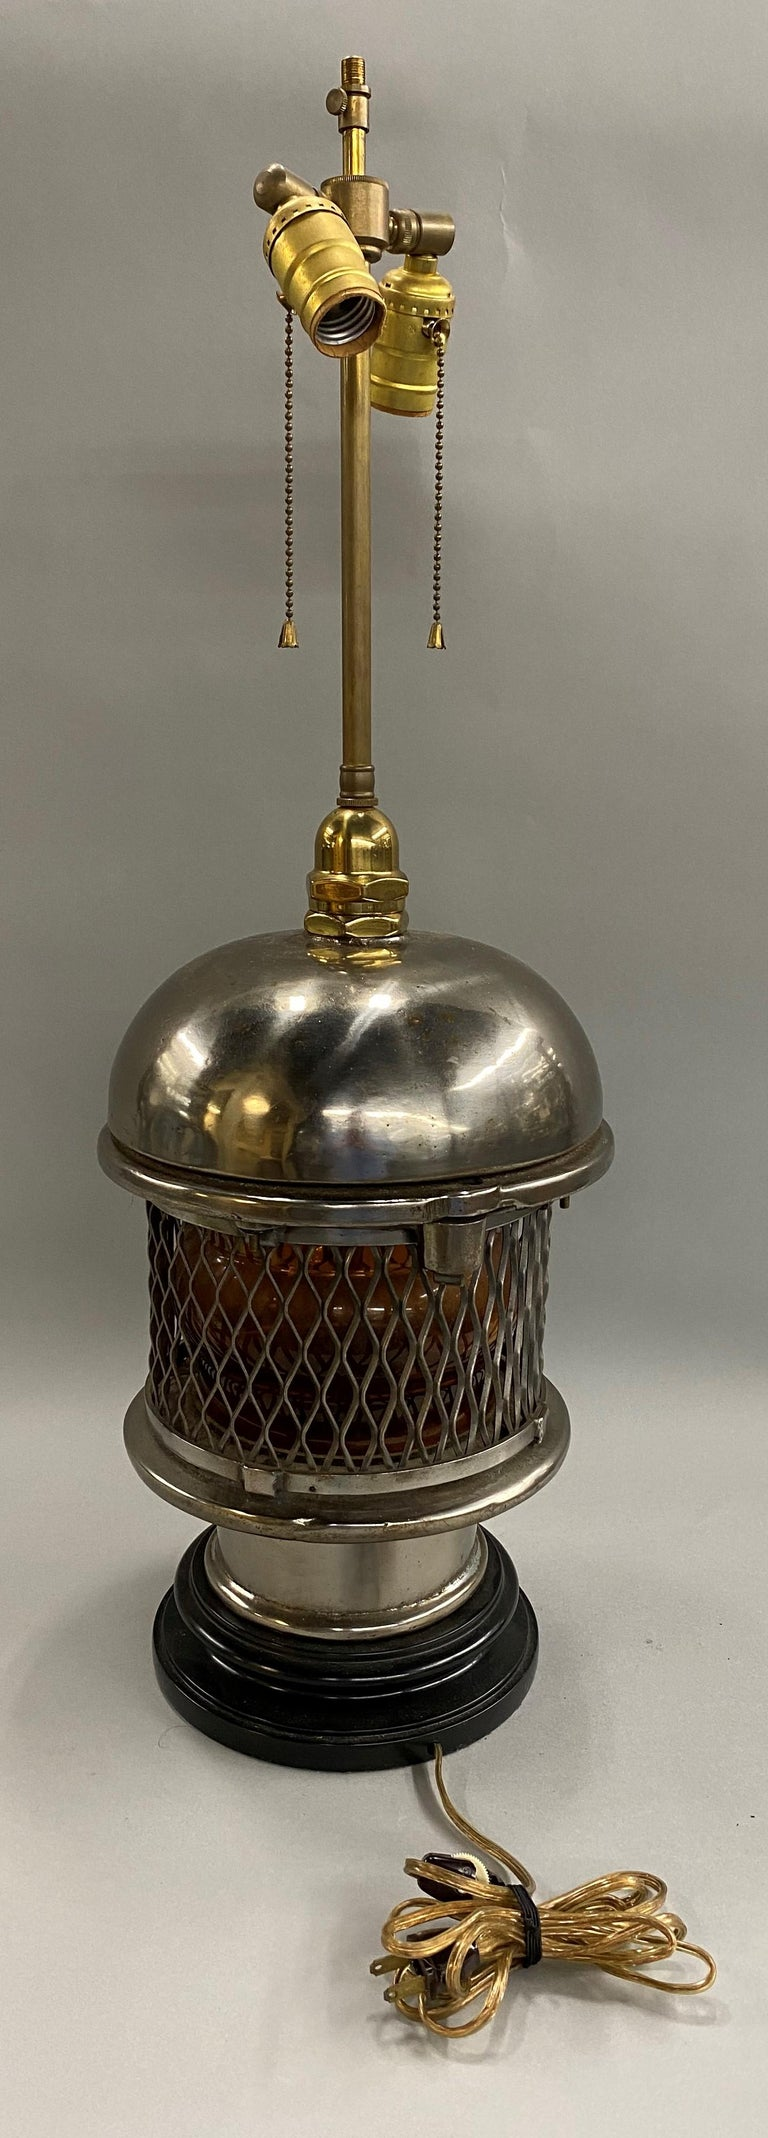 Glass Chrome Top Nautical Ship's Lantern Converted Table Lamp, circa 1930s For Sale